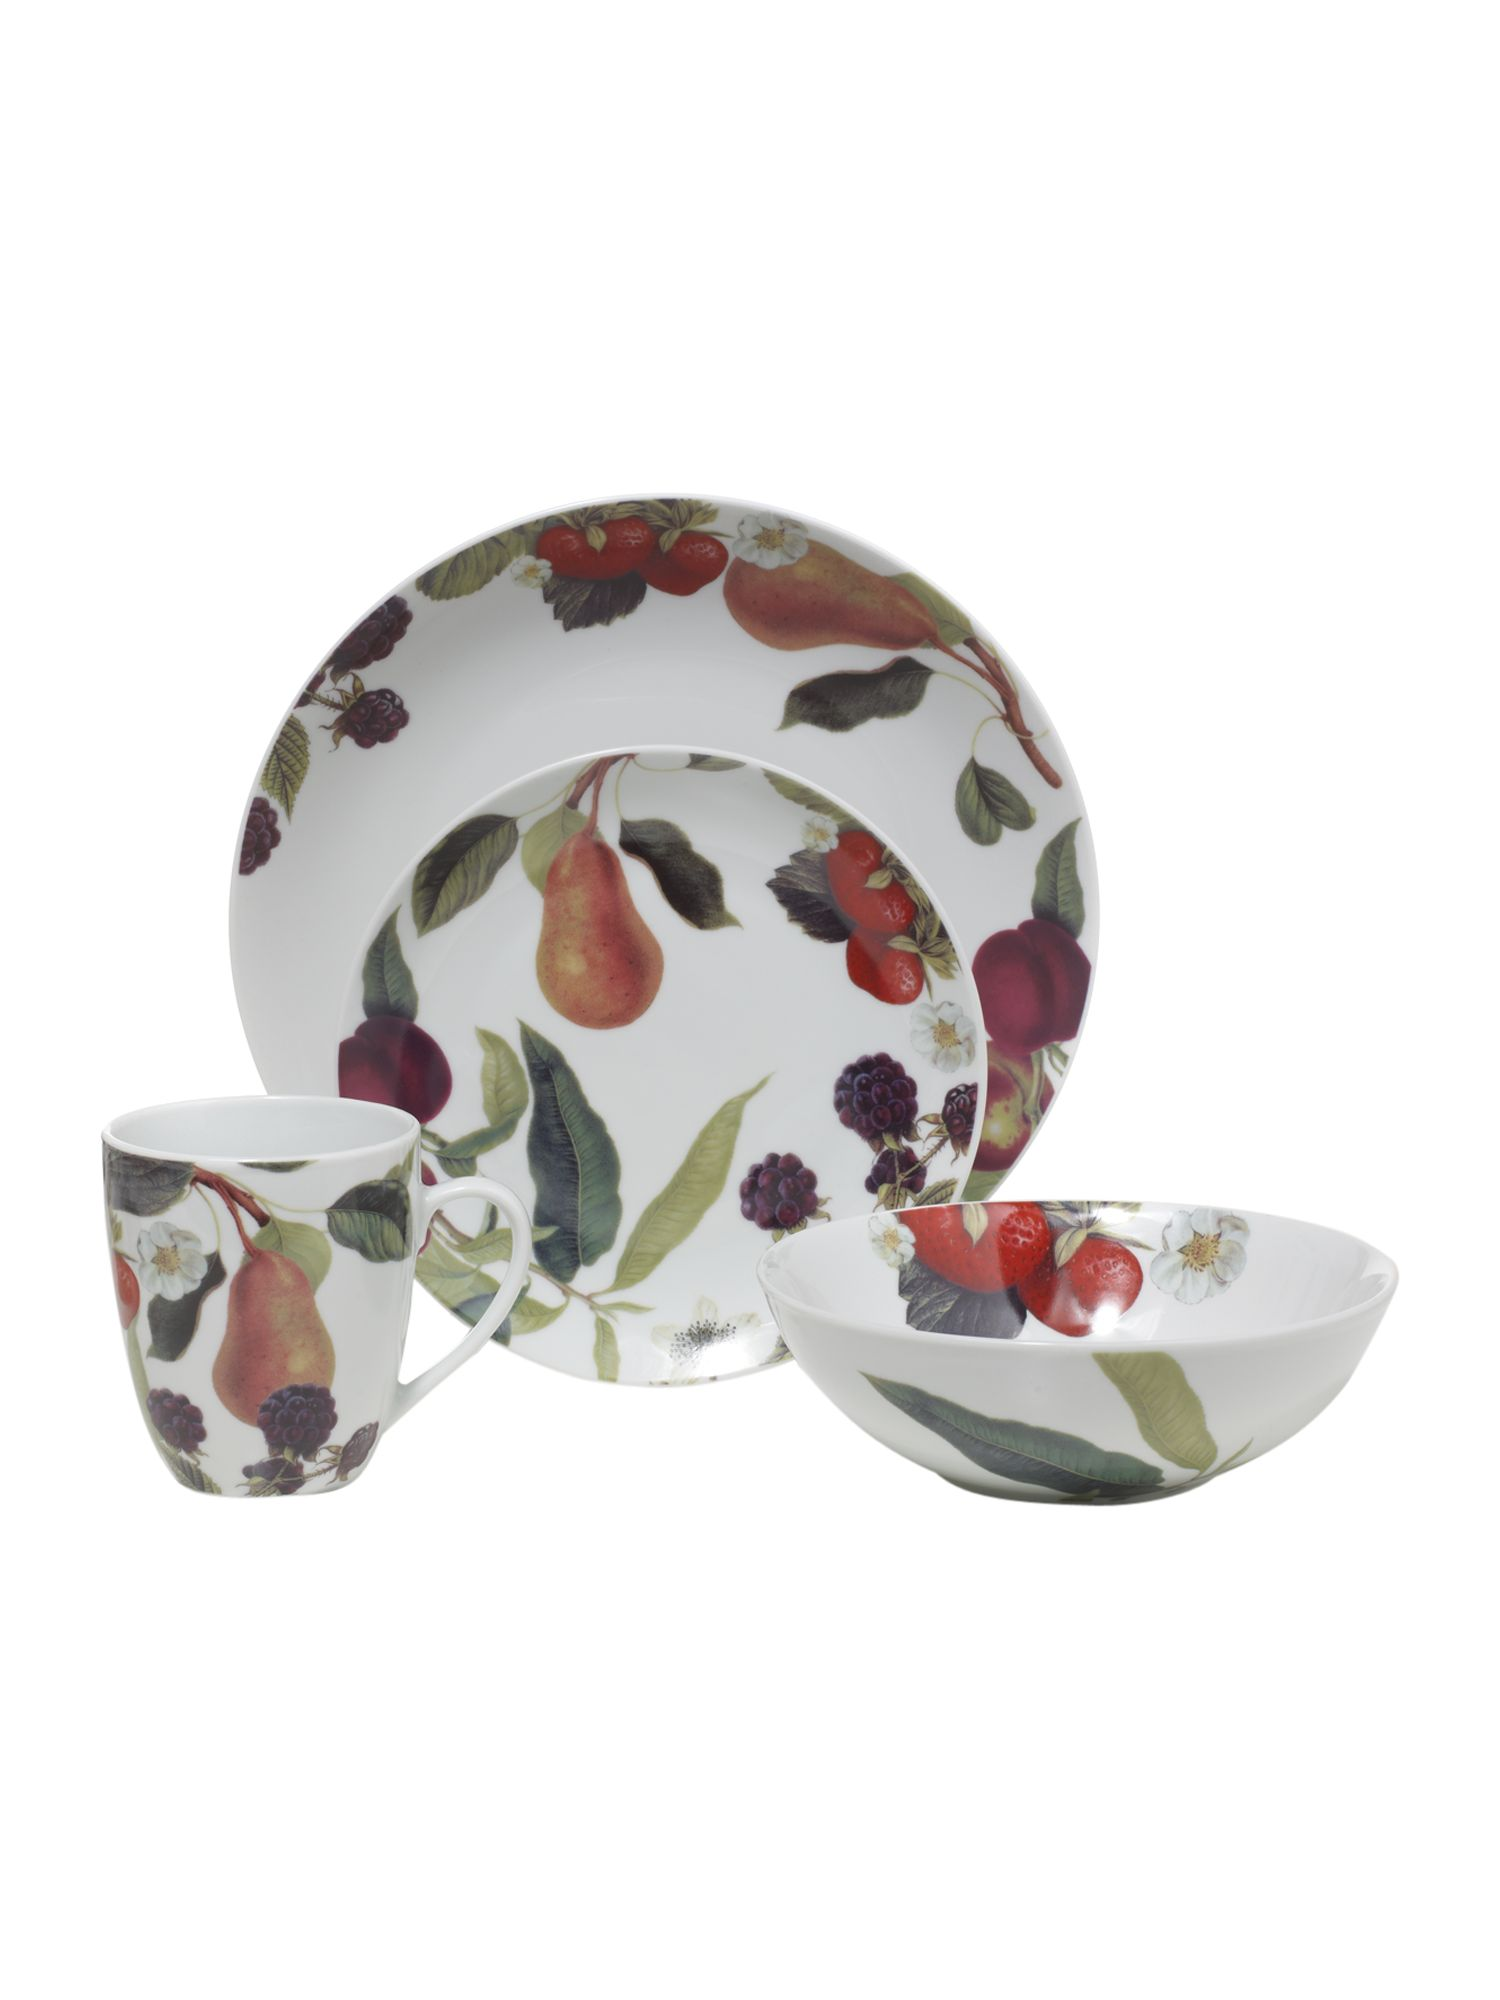 Botanical fruits dinnerware range